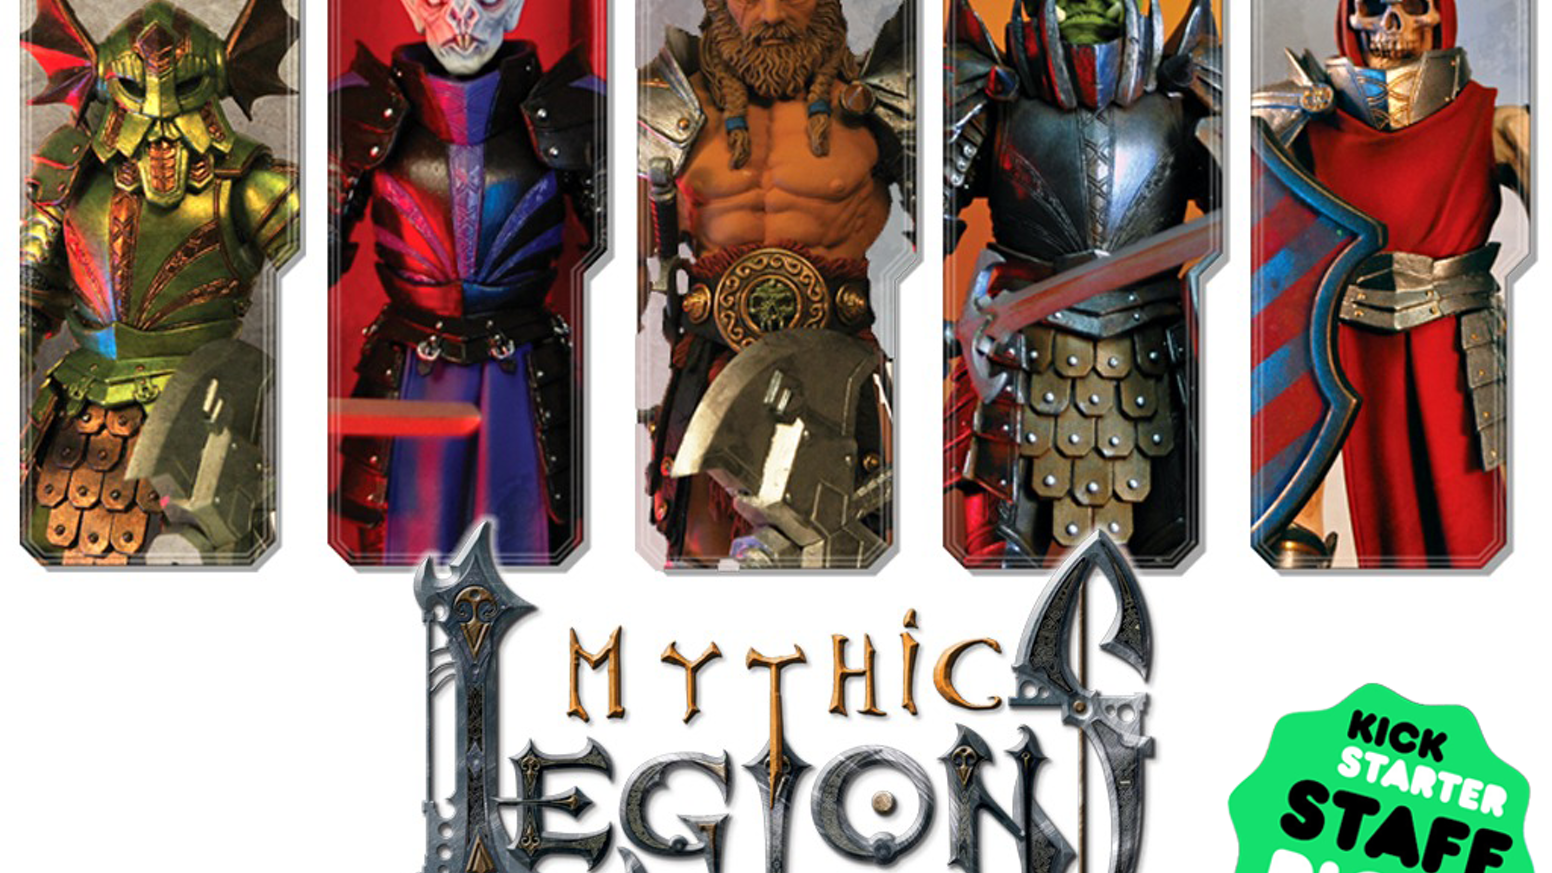 """Mythic Legions is a line of beautifully detailed and fully articulated 6"""" scale fantasy action figures by Four Horsemen Studios"""